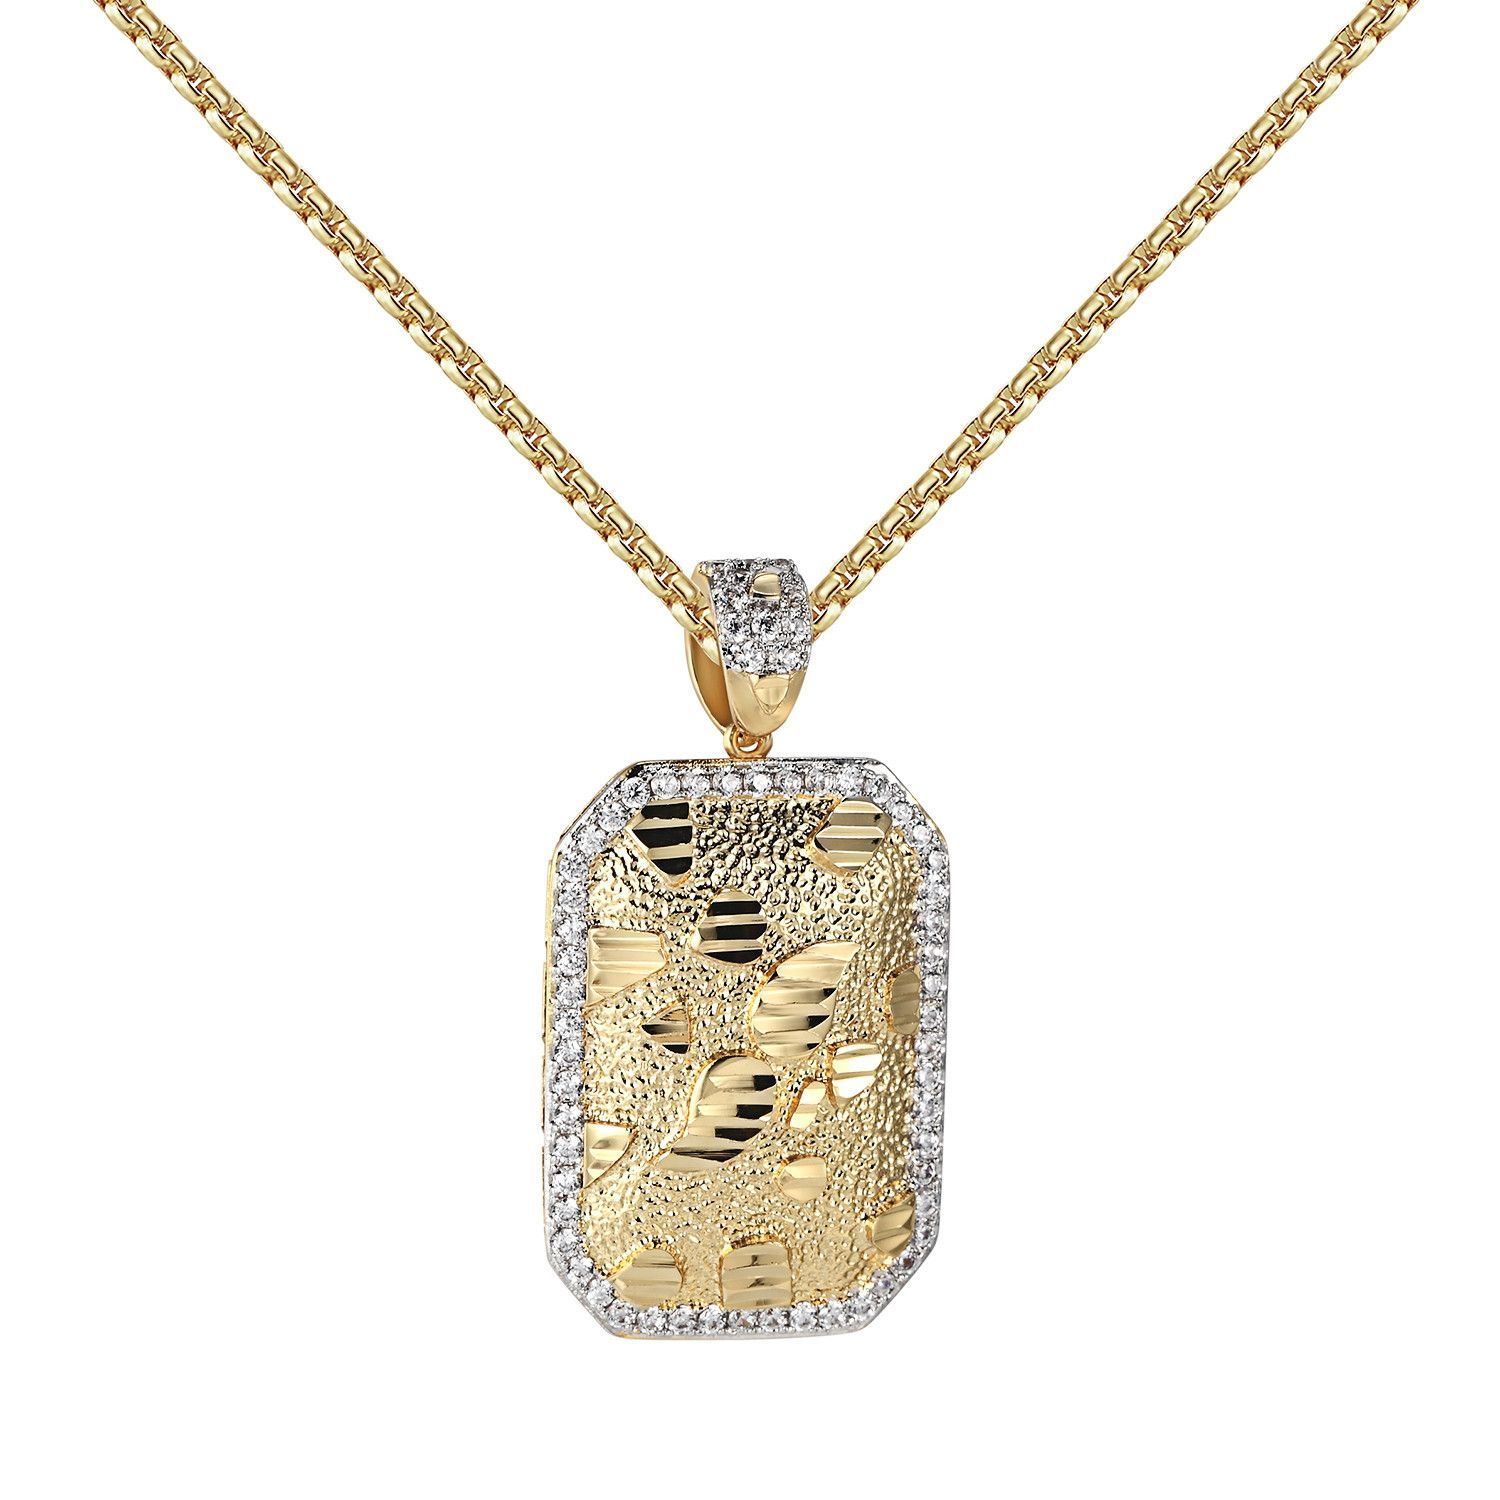 Nugget style dog tag pendant k yellow gold finish free